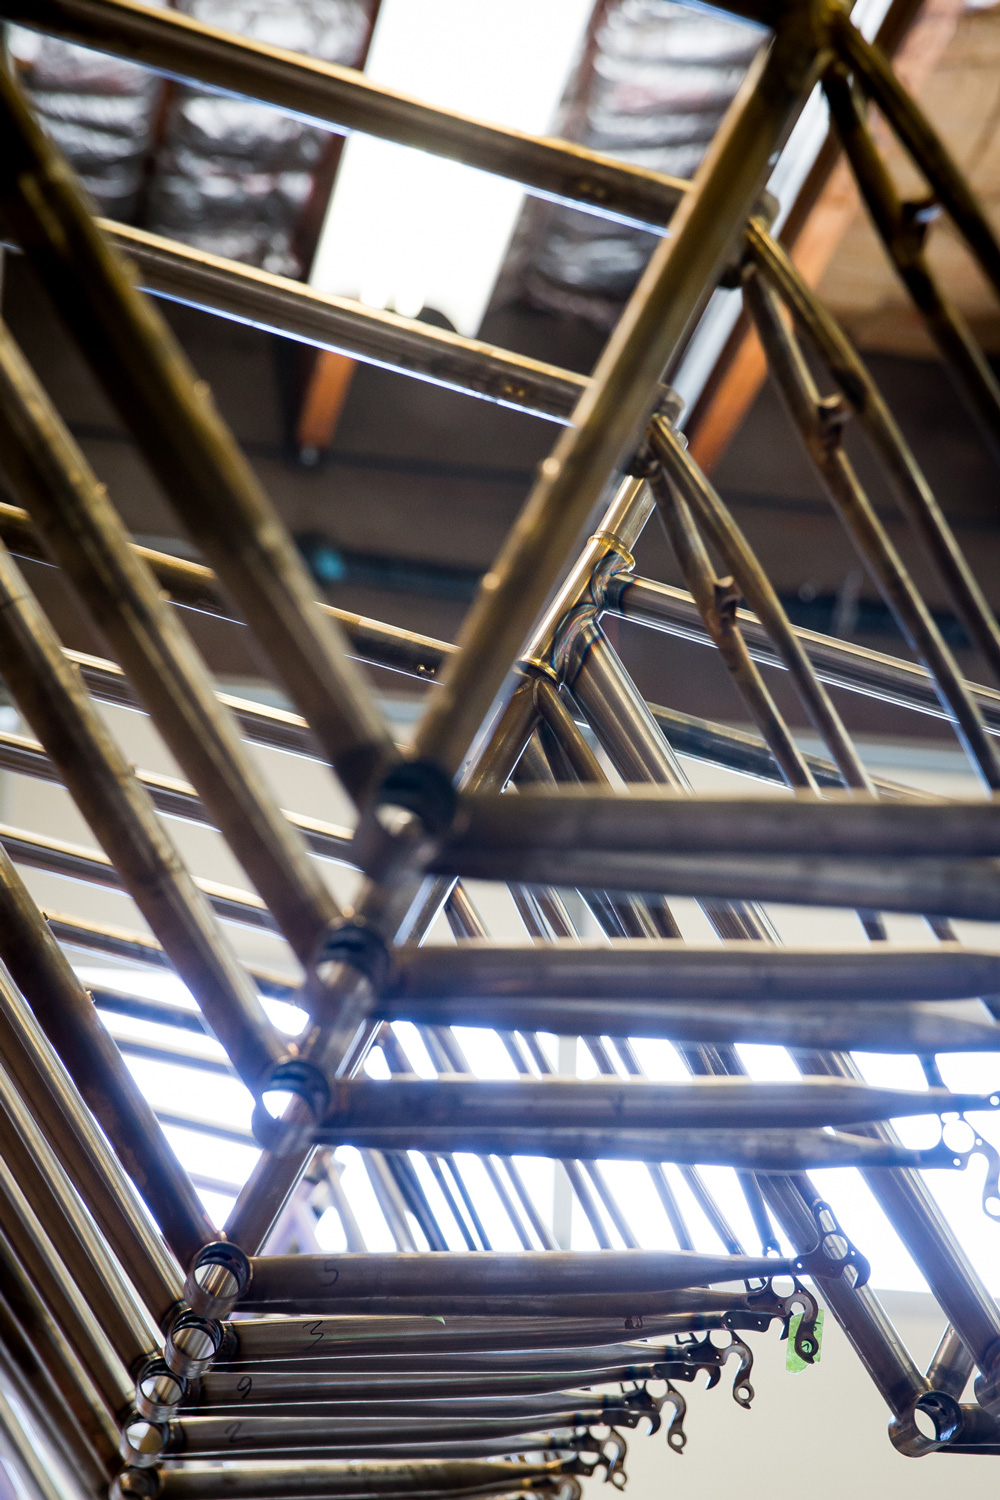 speedvagen-frames-in-fabrication.jpg